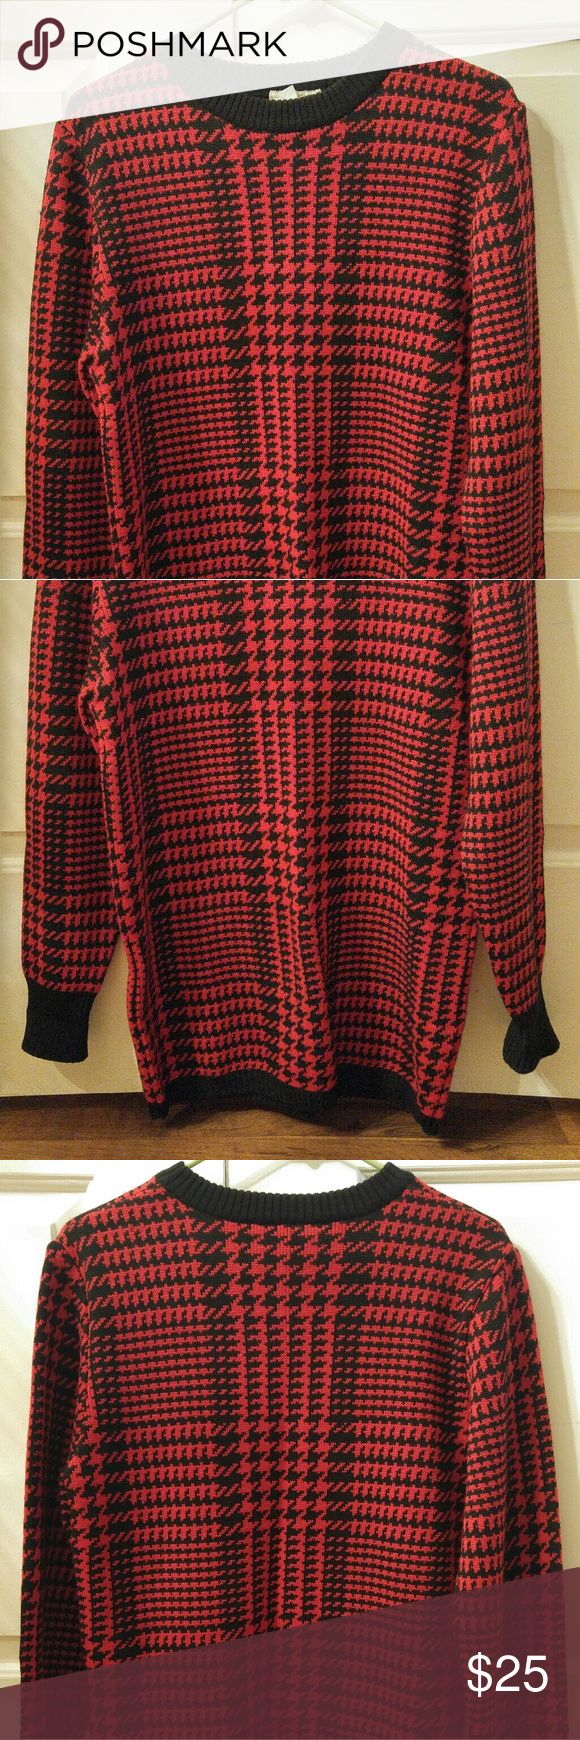 Vintage Anne Klein Plaid Pullover Wool Sweater In good Pre-owned vintage condition. Cuffs had been folded up which is why there is a crease. Anne Klein Sweaters Crew & Scoop Necks